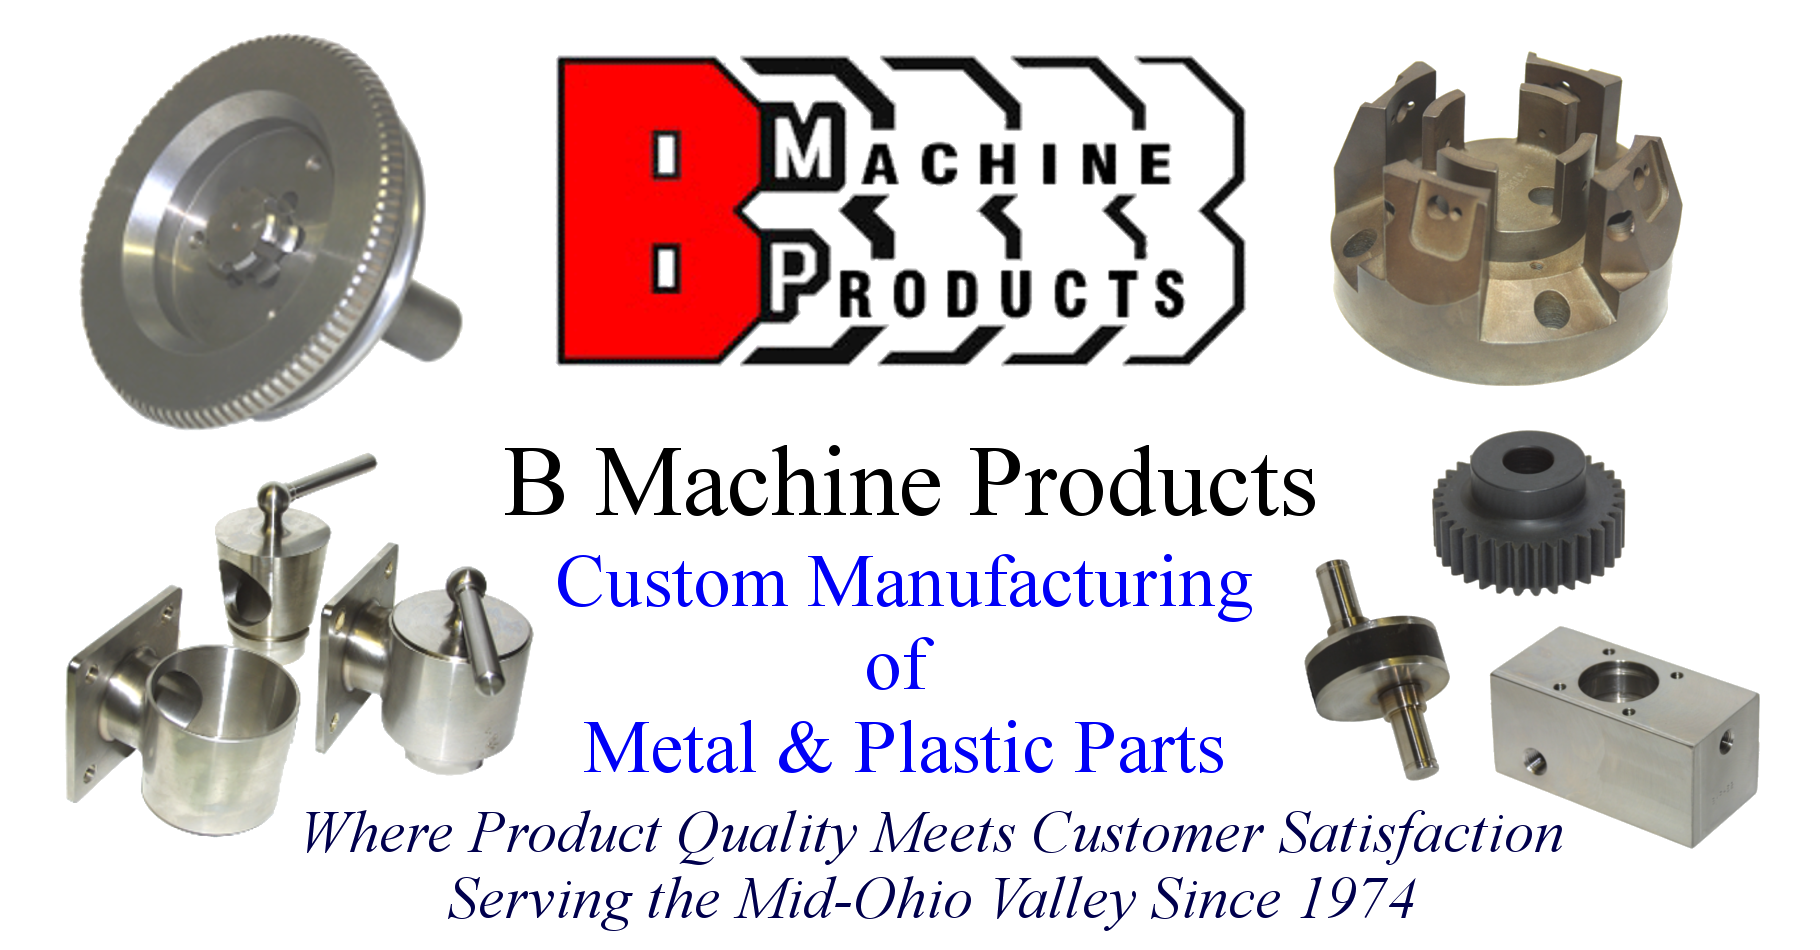 BMachine Products